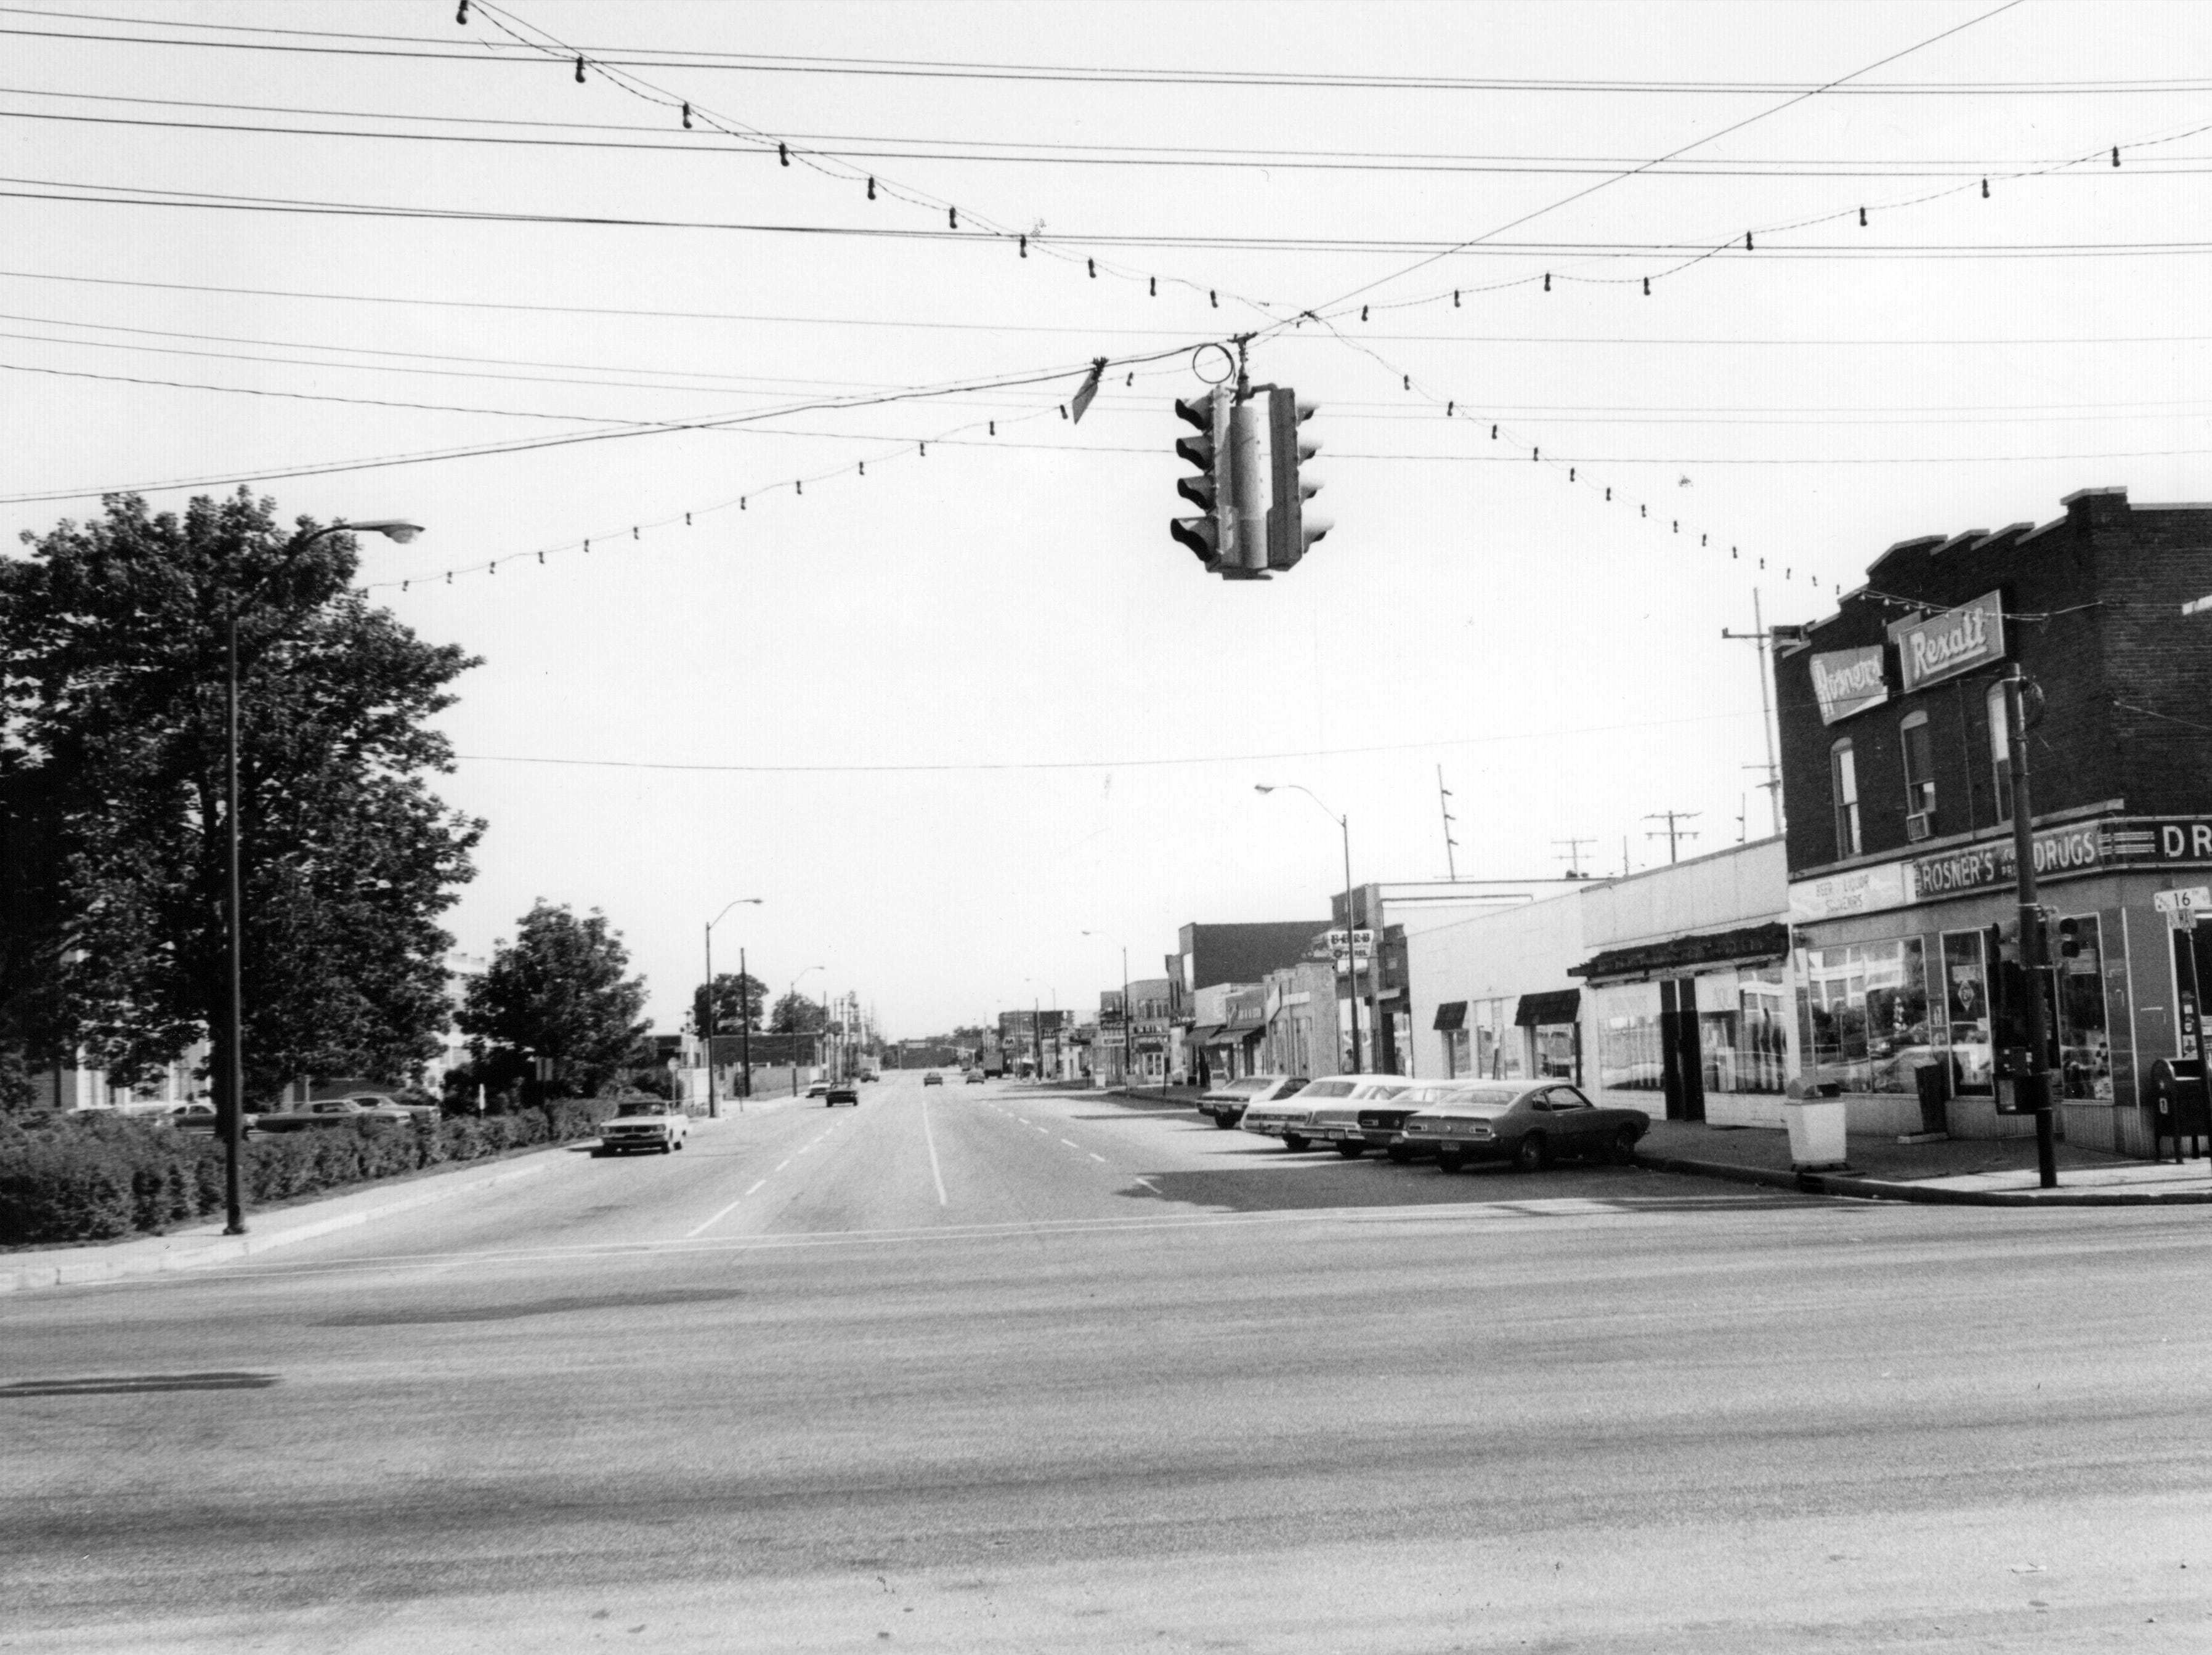 Main Street in Speedway looking south possibly in the '70s.